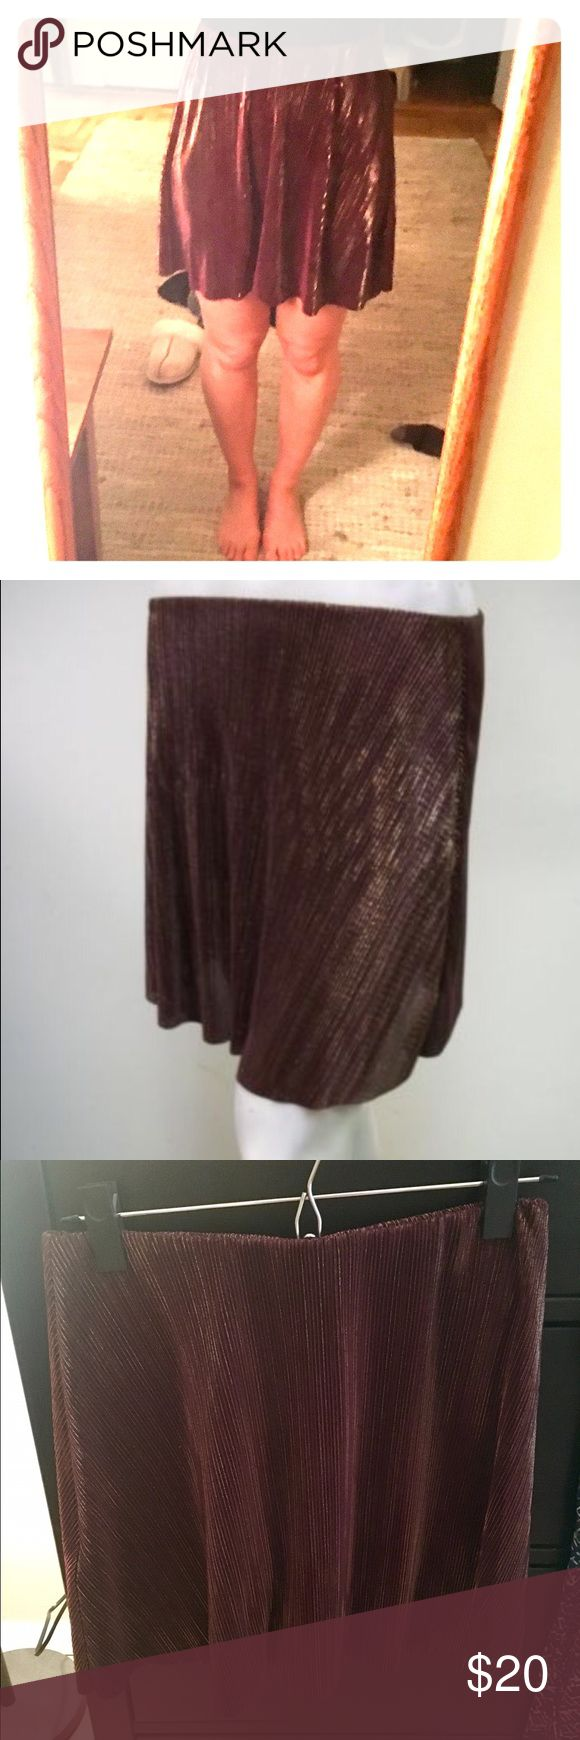 BCBGENERATION Burgundy Gold  A-Line Mini Skirt Worn once!!!   Brand: BCBGeneration  Style: Skirt  Features:  A-Line Mini Gold Shimmer Detail Wide Elastic Waist Band on the inside Machine Washable Color: Burgundy  Size: S BCBGeneration Skirts Mini